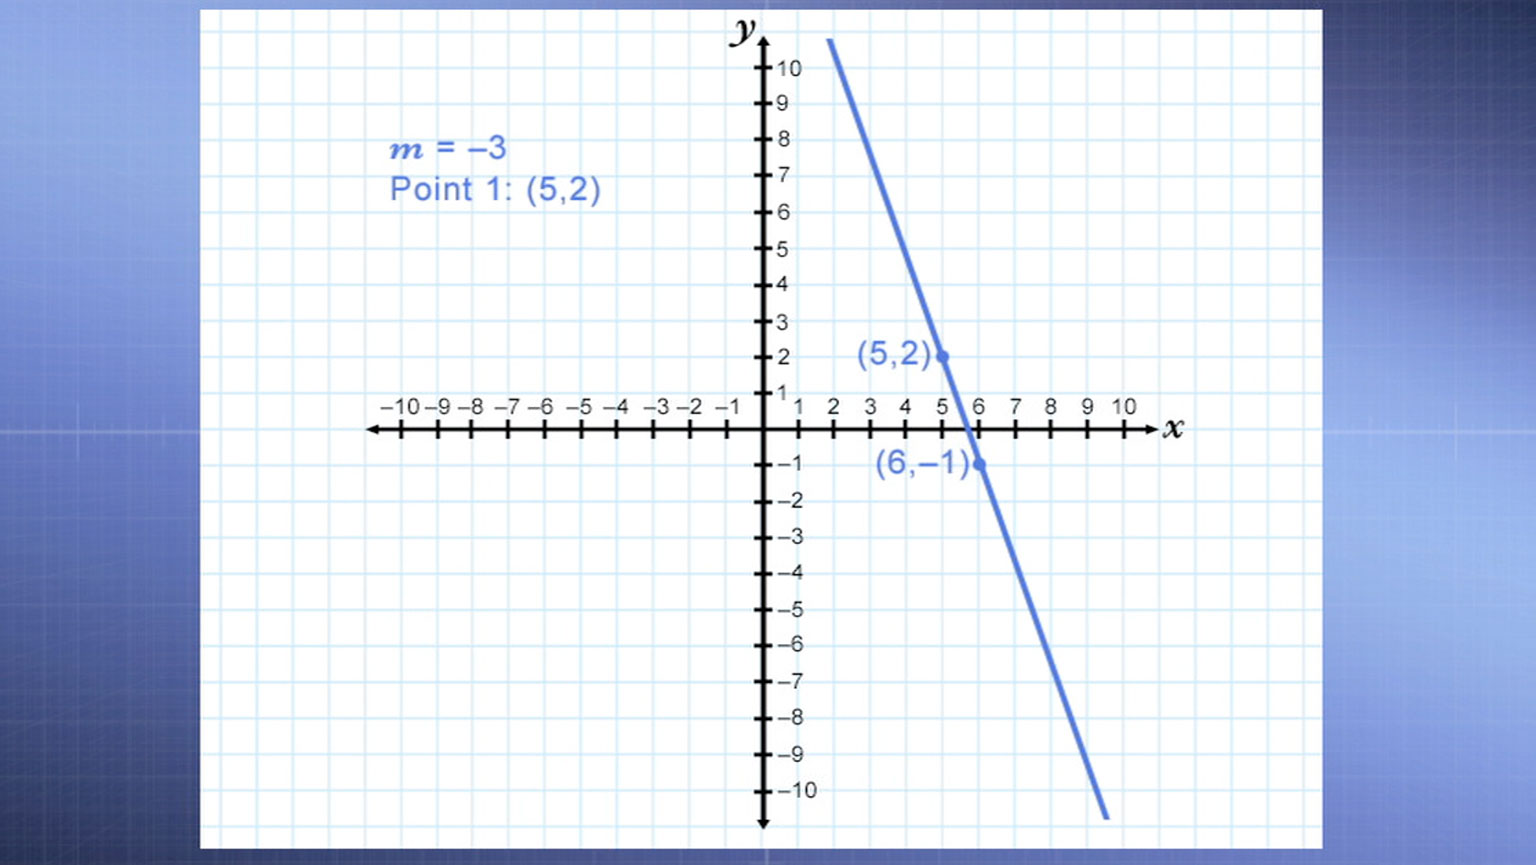 Graphing Linear Equations, Part 1